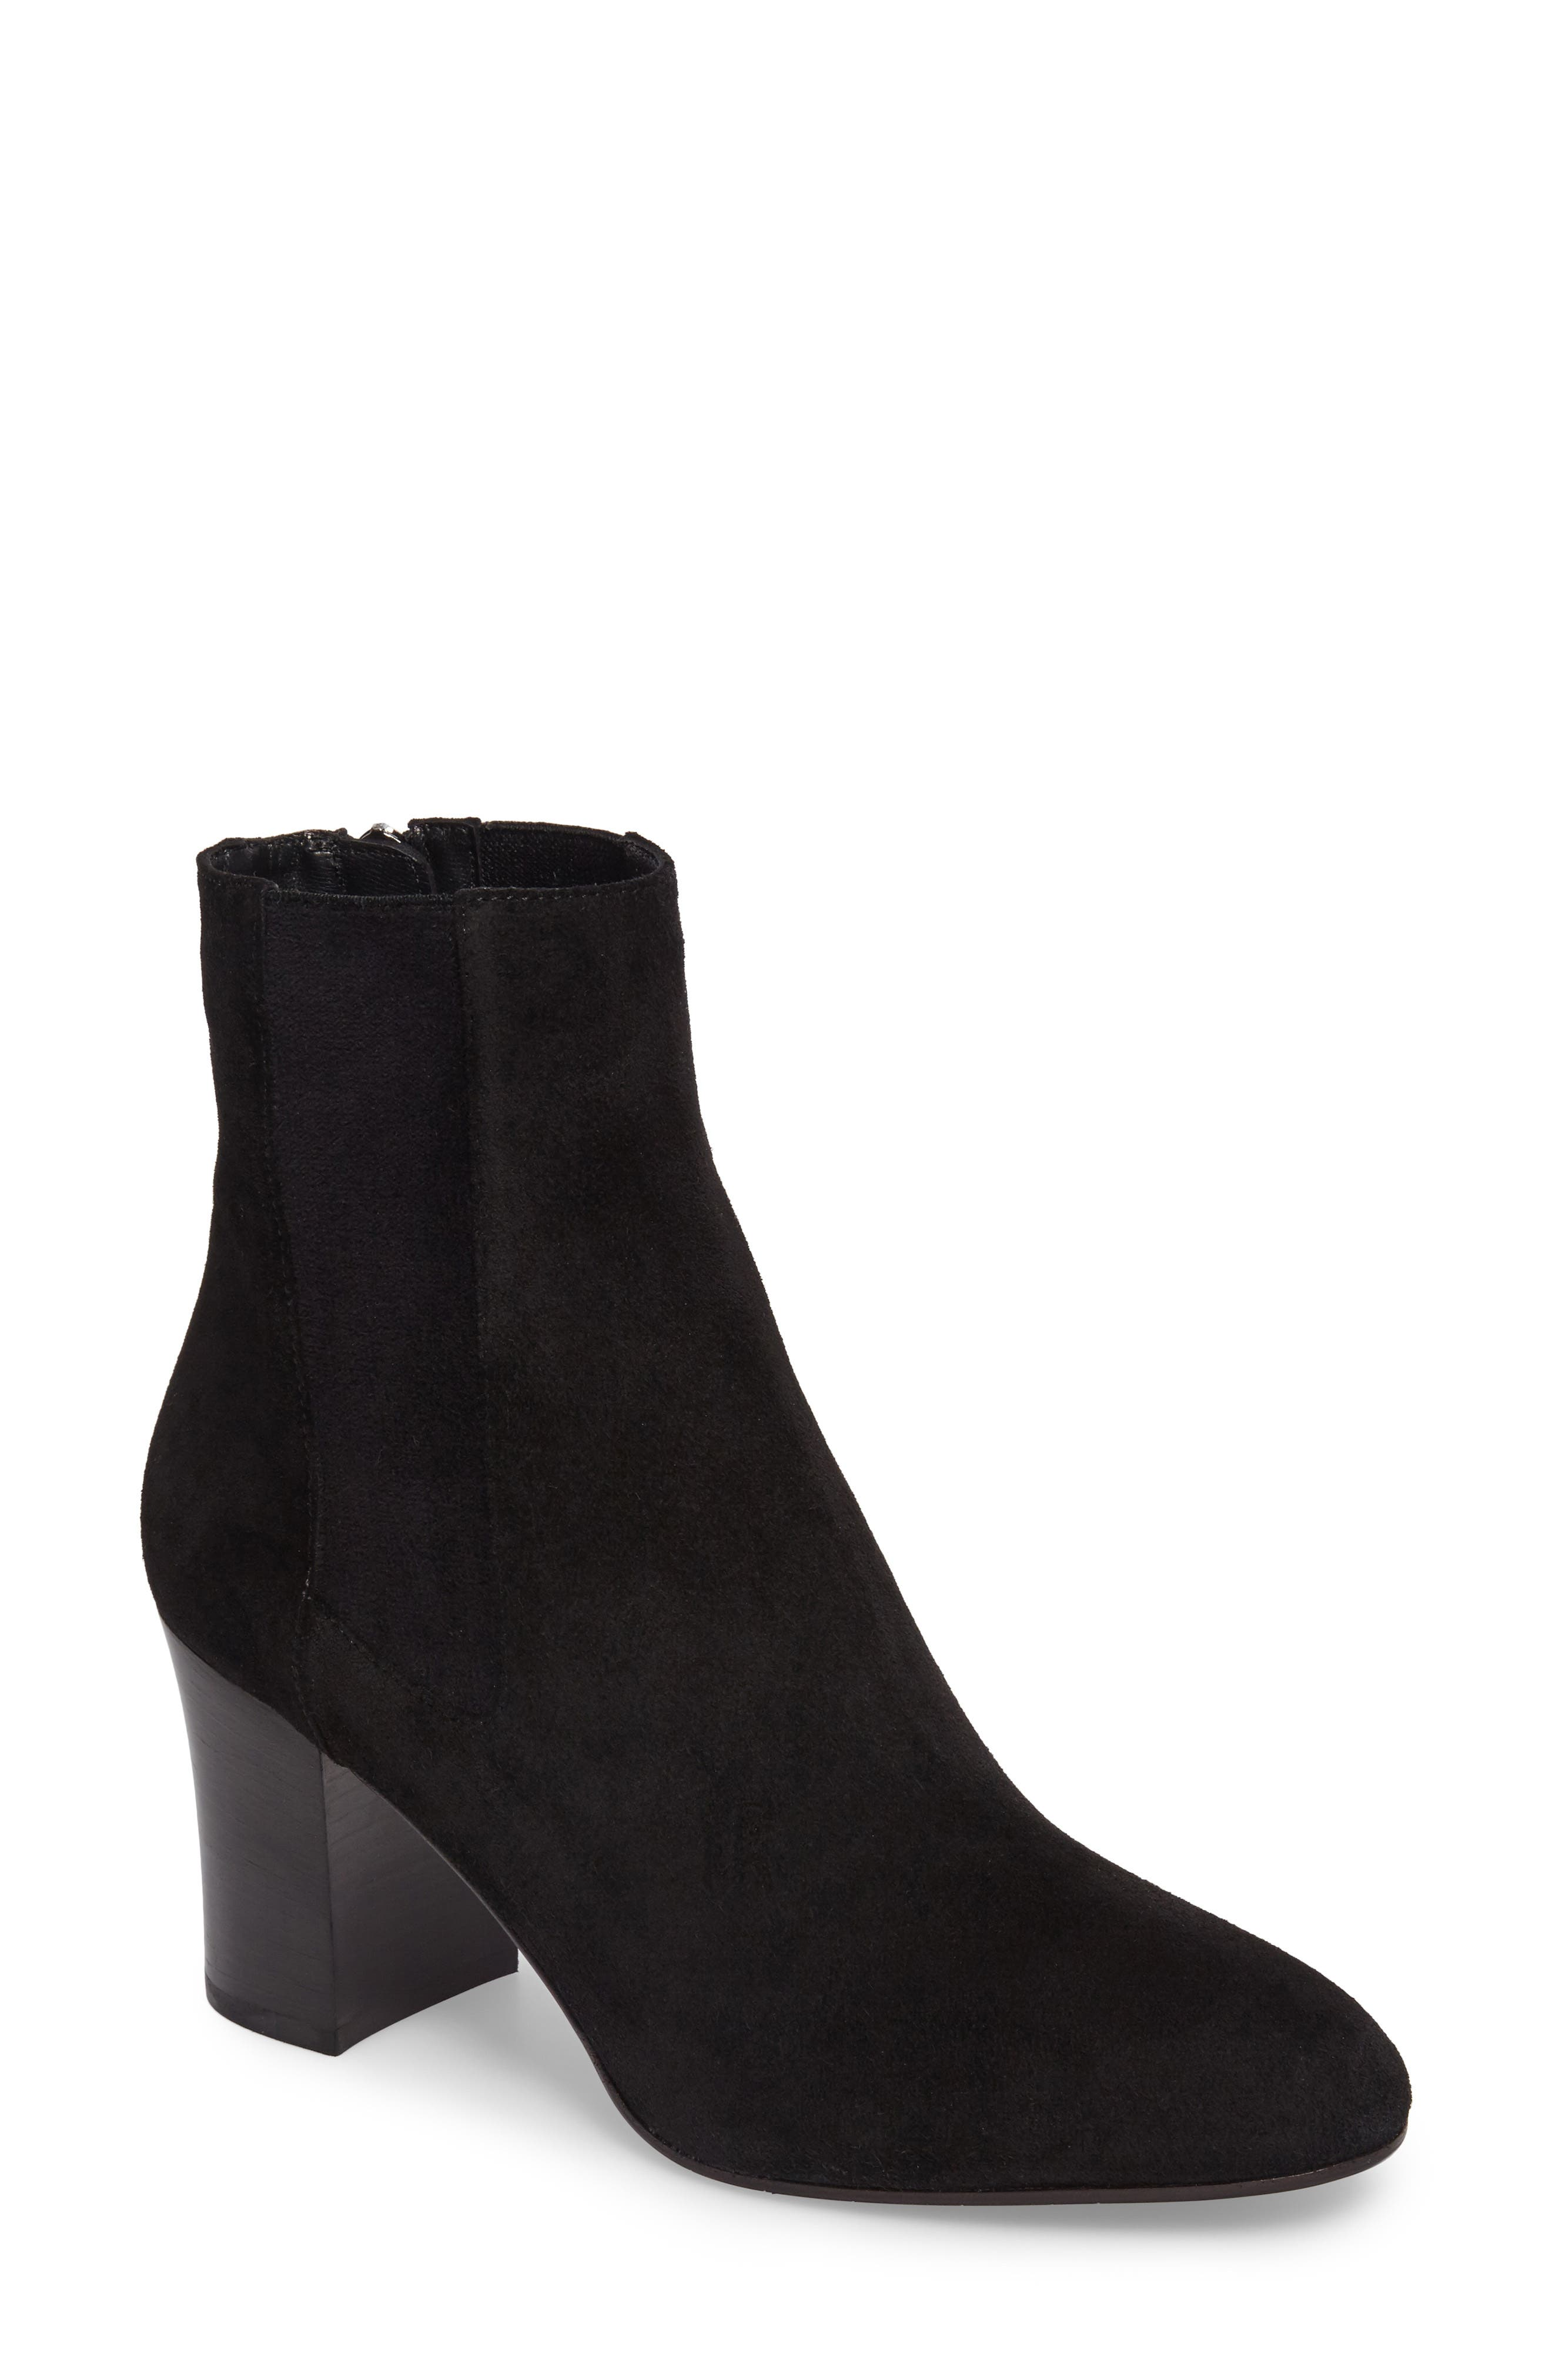 Frida Weatherproof Bootie,                             Main thumbnail 1, color,                             Black Suede